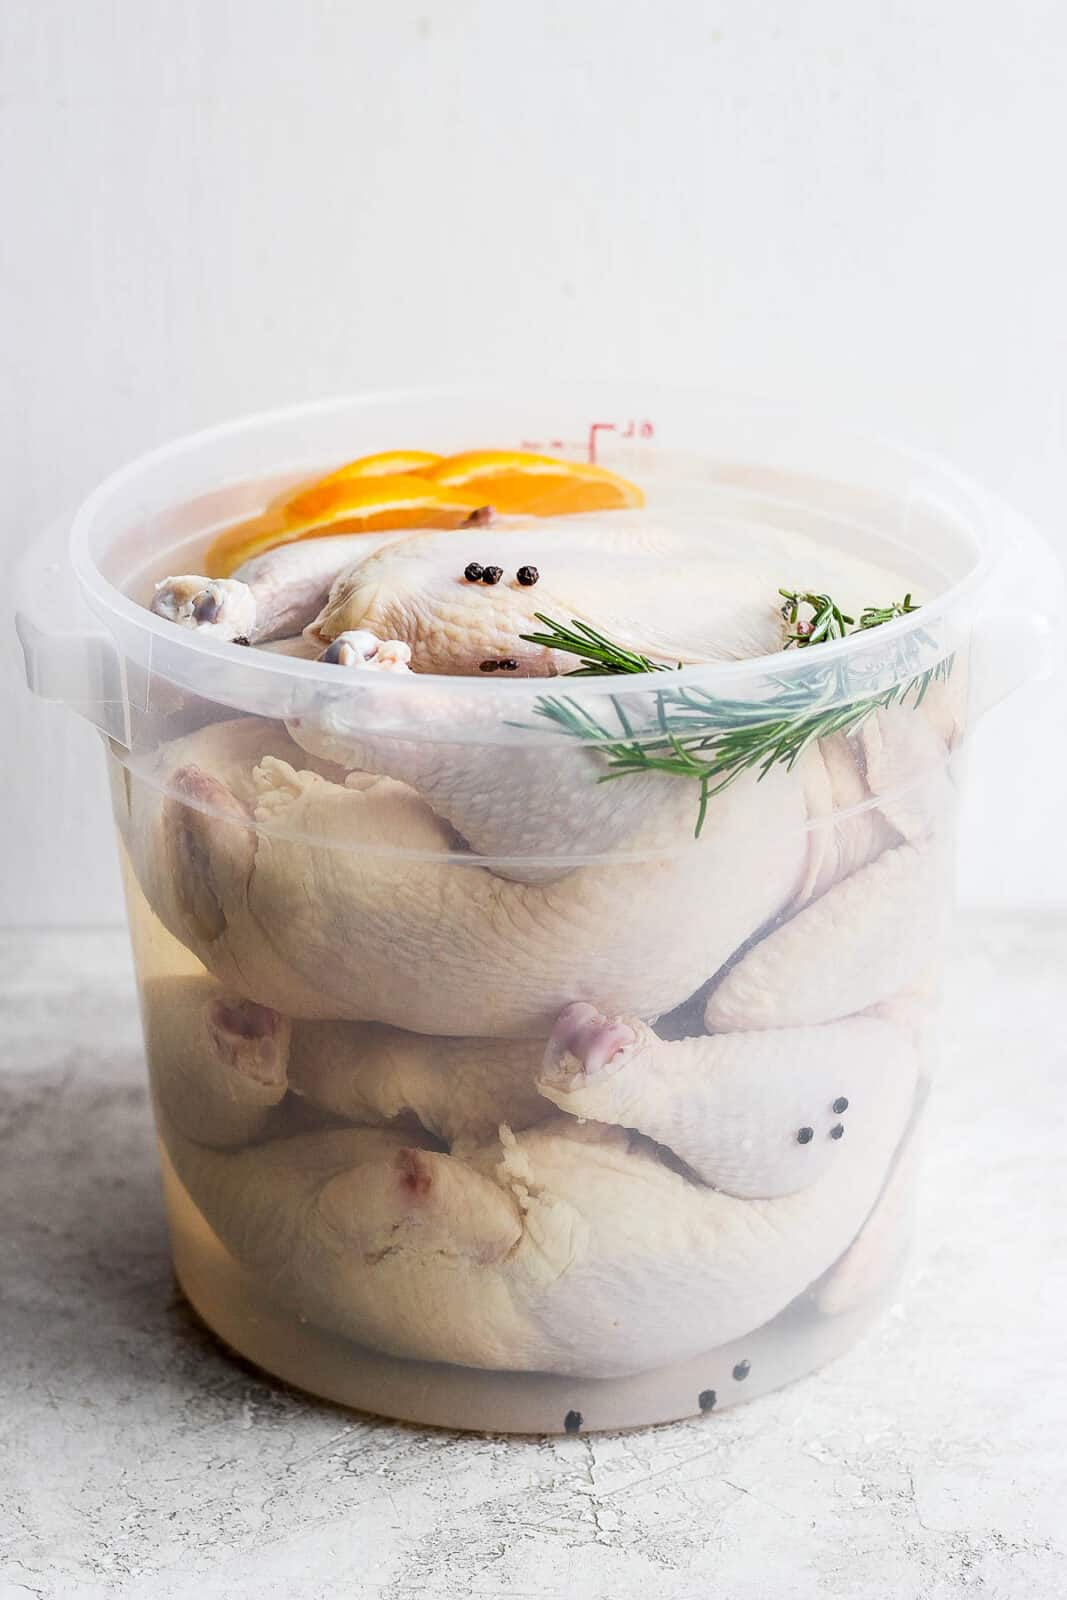 Two whole, raw chickens in a smoked chicken brine.